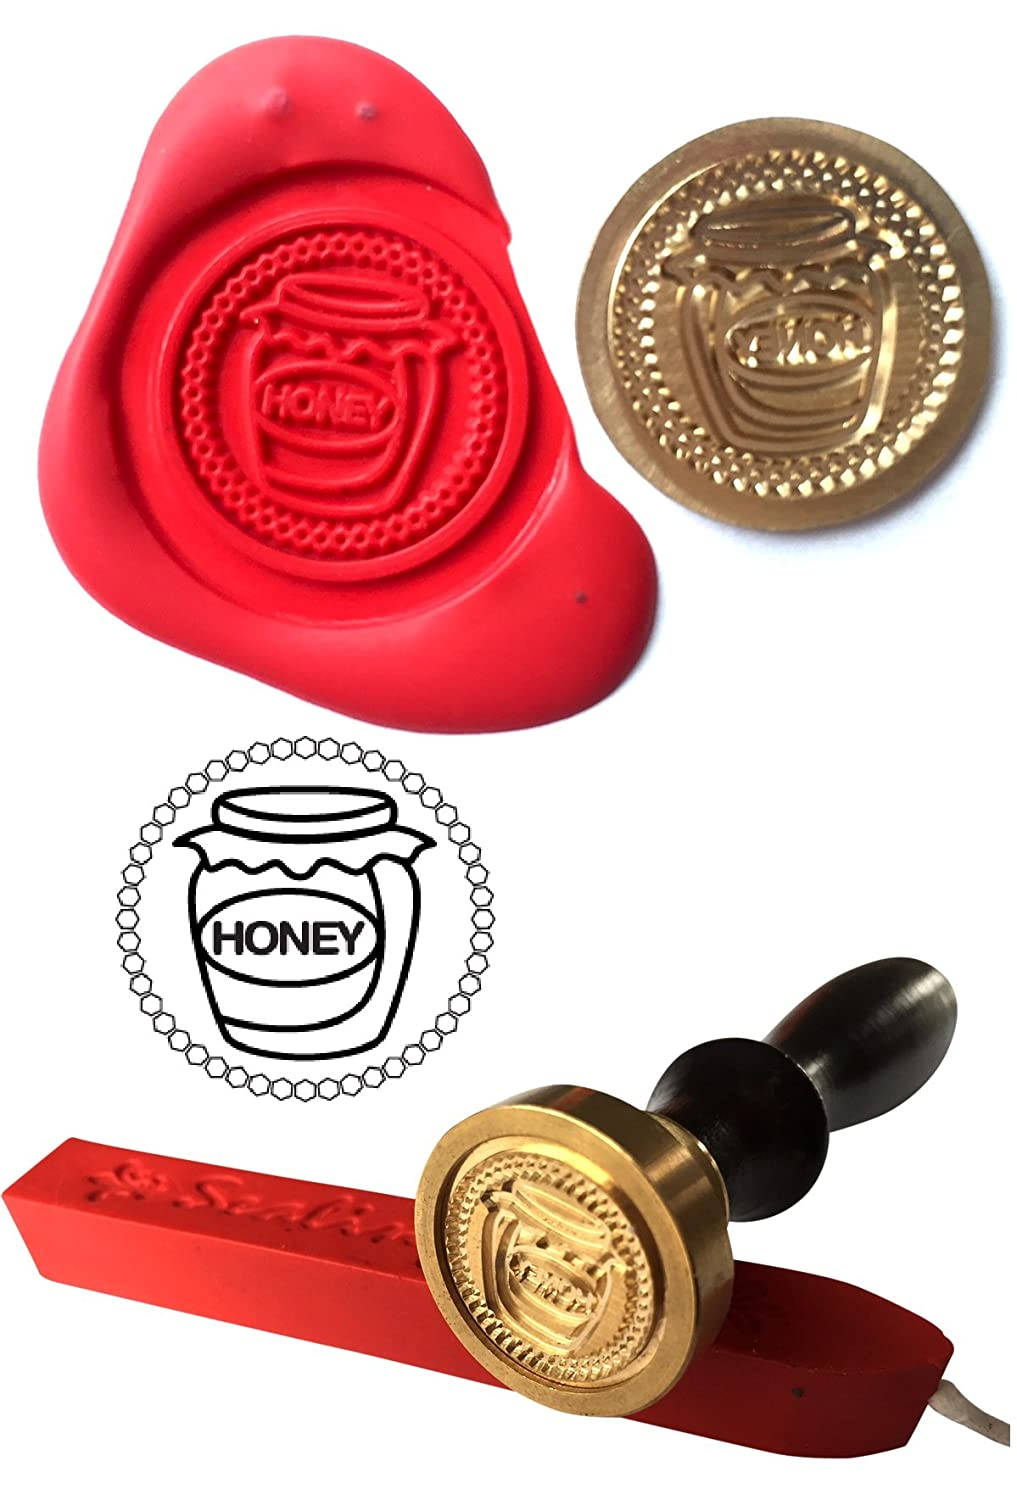 Wax Stamp, JAR OF HONEY Beekeeper Apiarist Honey Bees Coin Seal and Red Wax Stick XWSC023-KIT (S19) GTR-Gifts